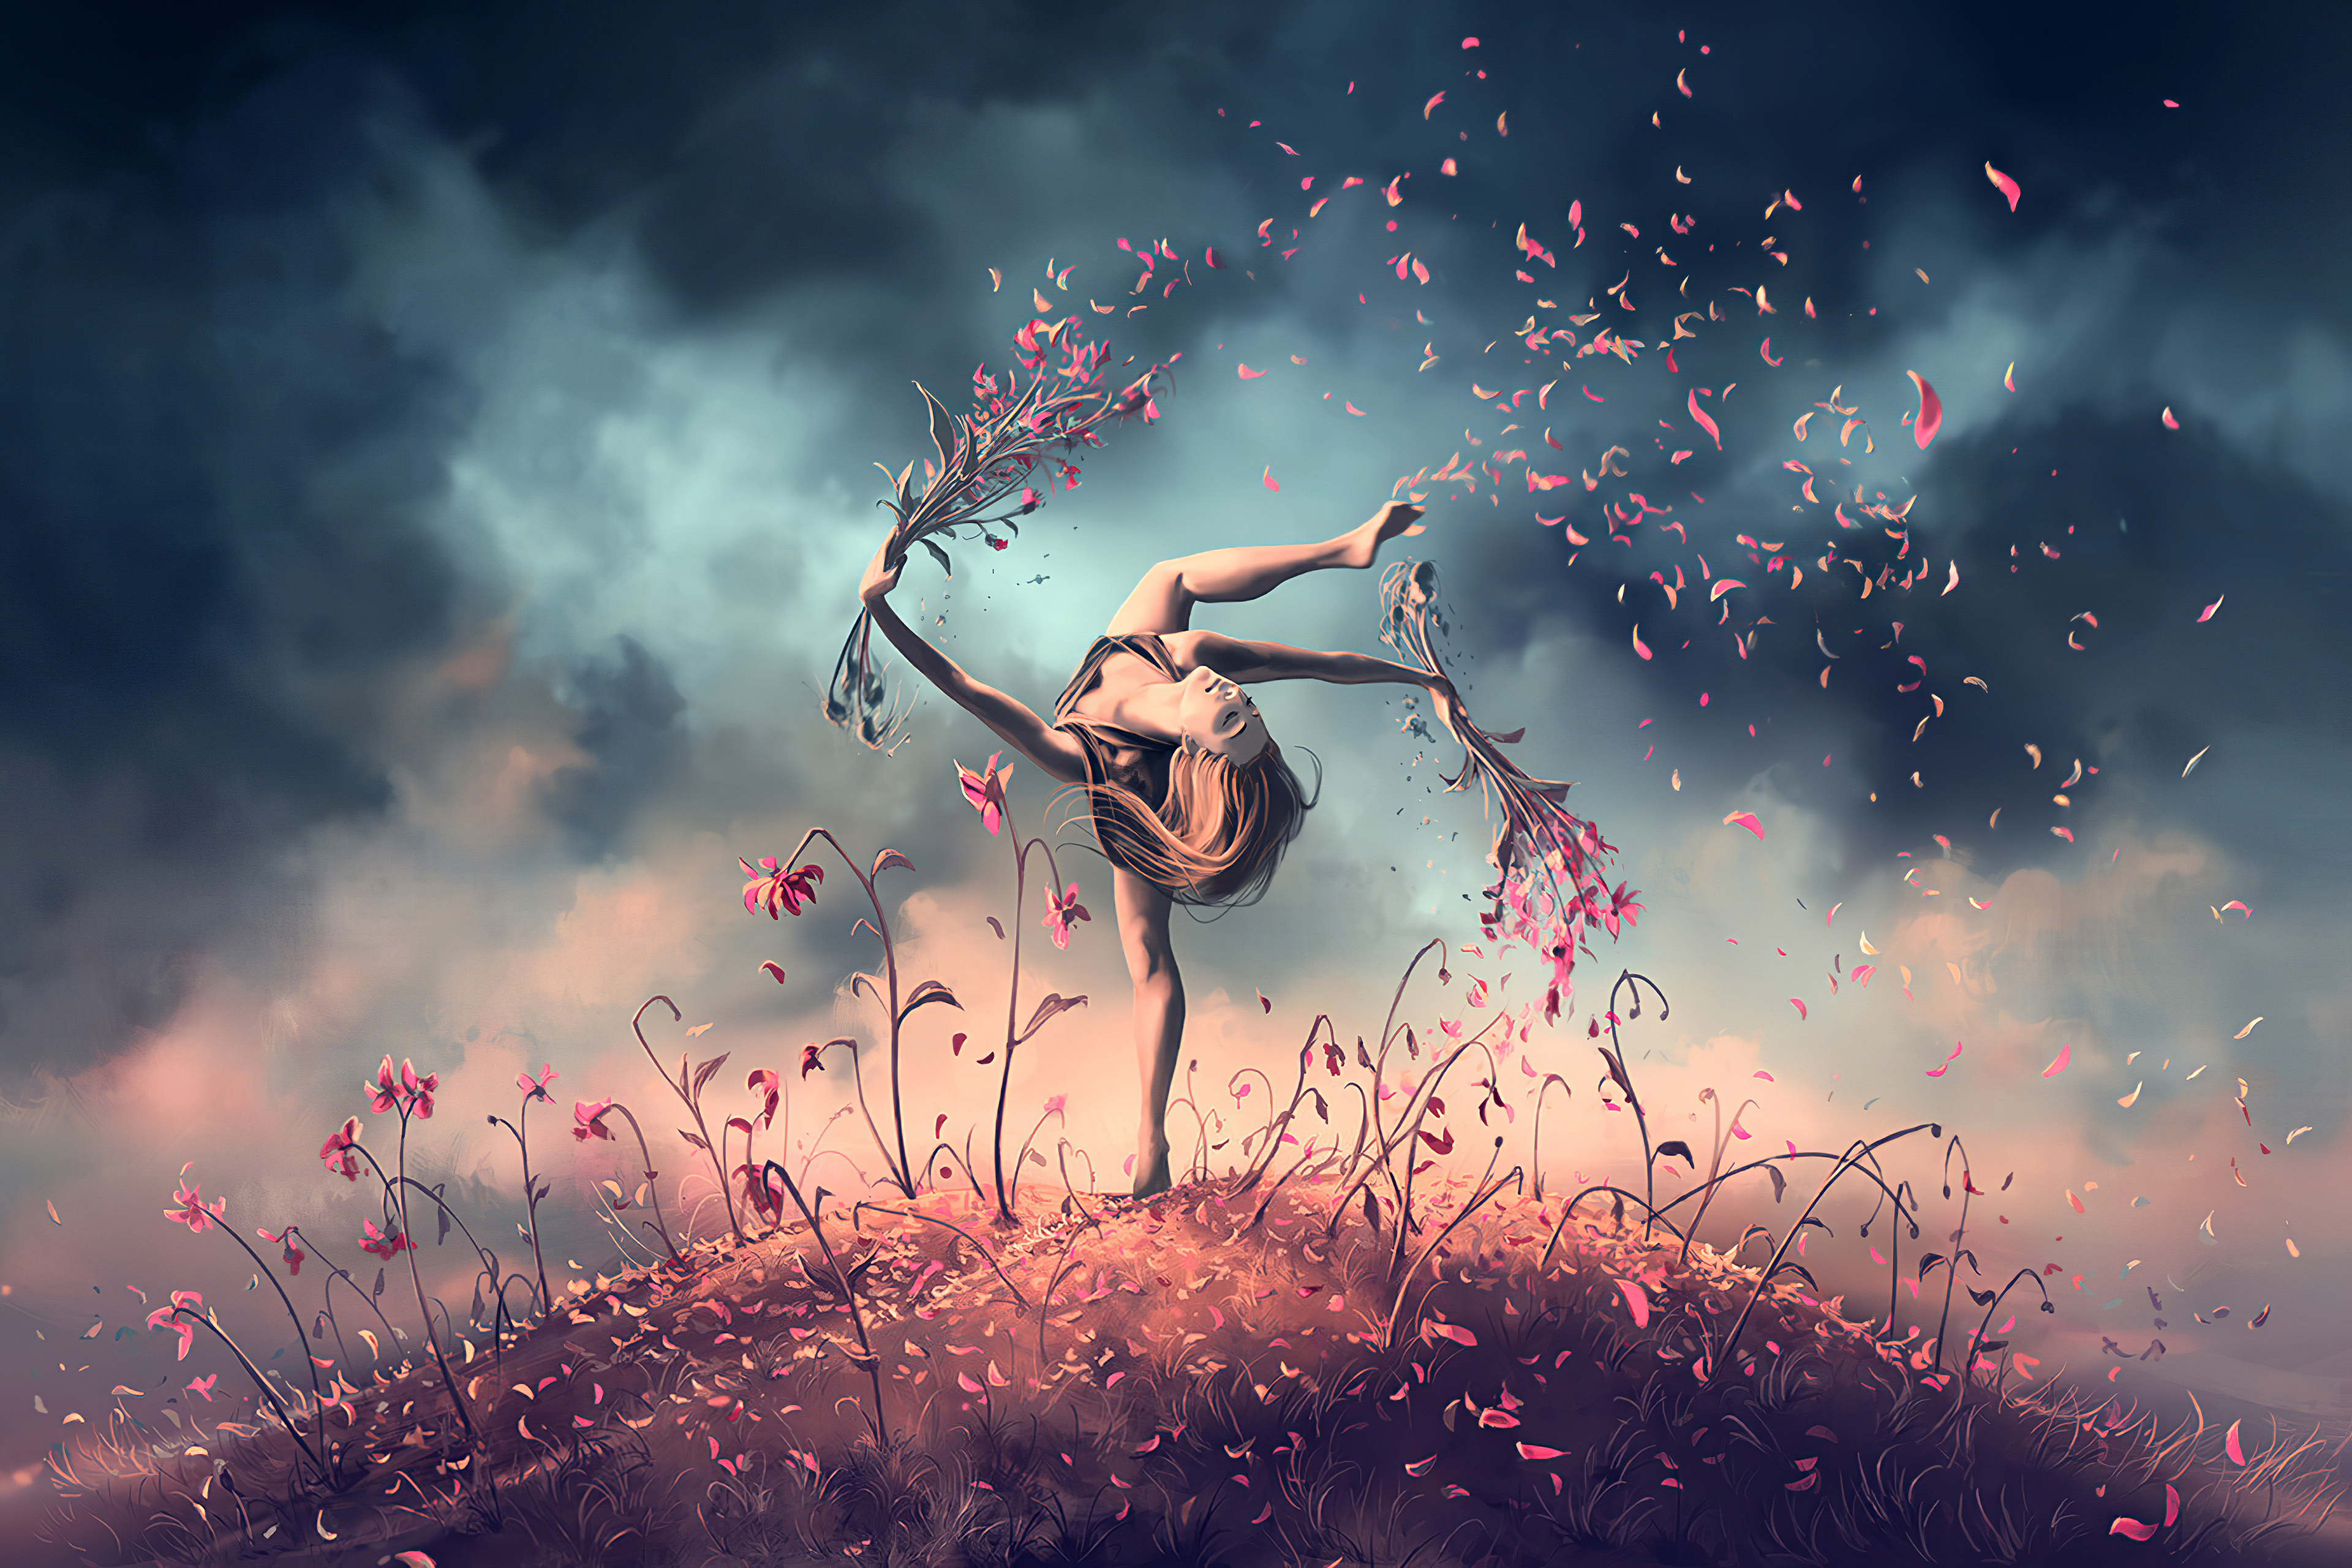 Virgo Dance 4k Hd Artist 4k Wallpapers Images Backgrounds Photos And Pictures